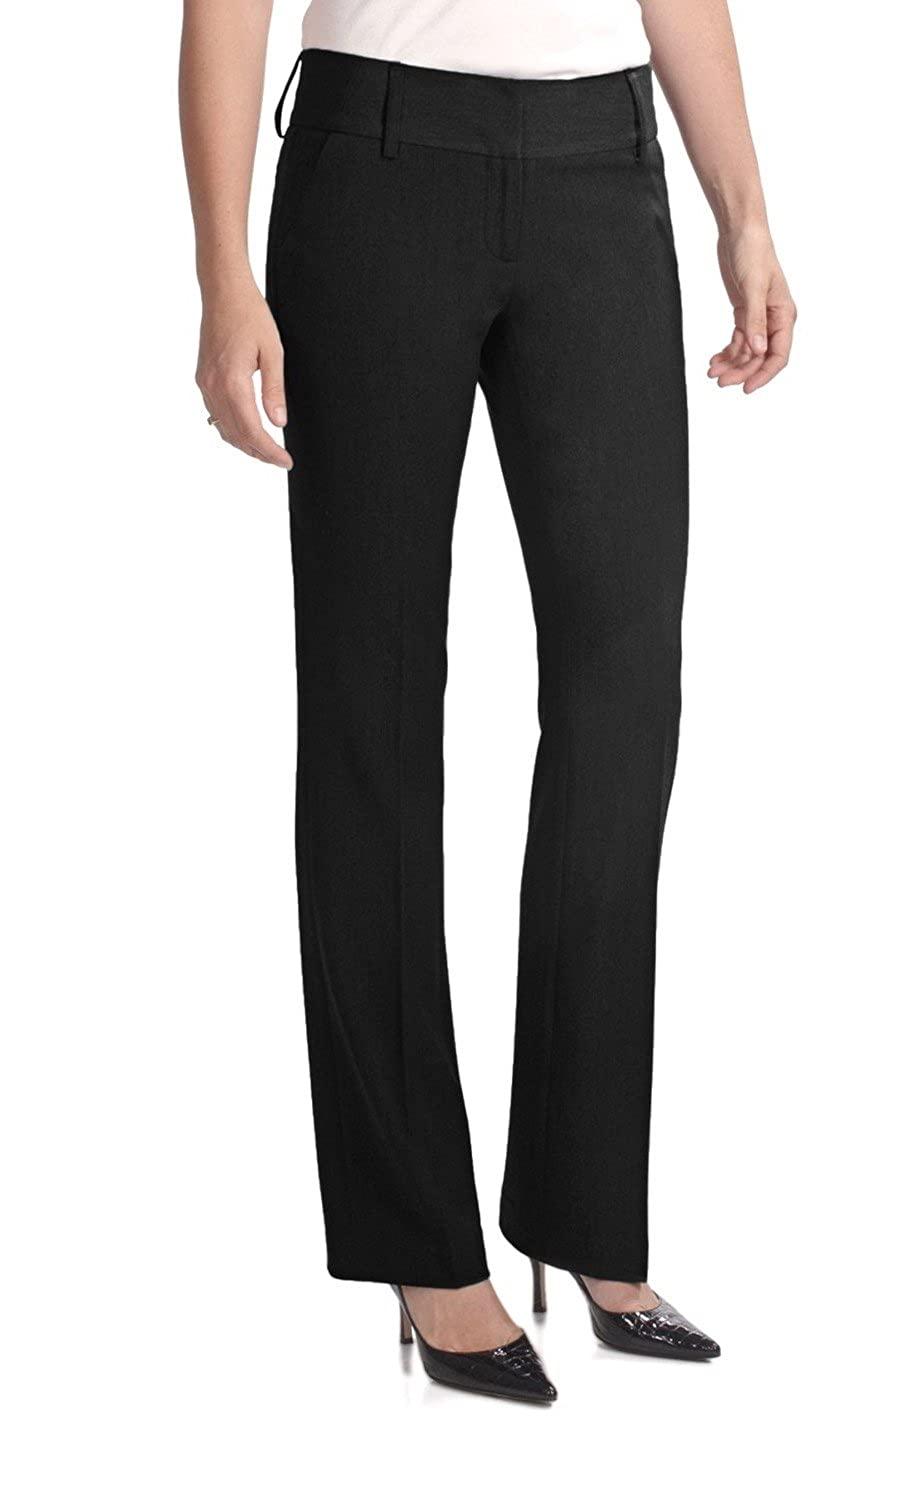 AMANDA + CHELSEA STRAIGHT LEG PETITE DRESS PANT WOMEN'S US SIZE 8P